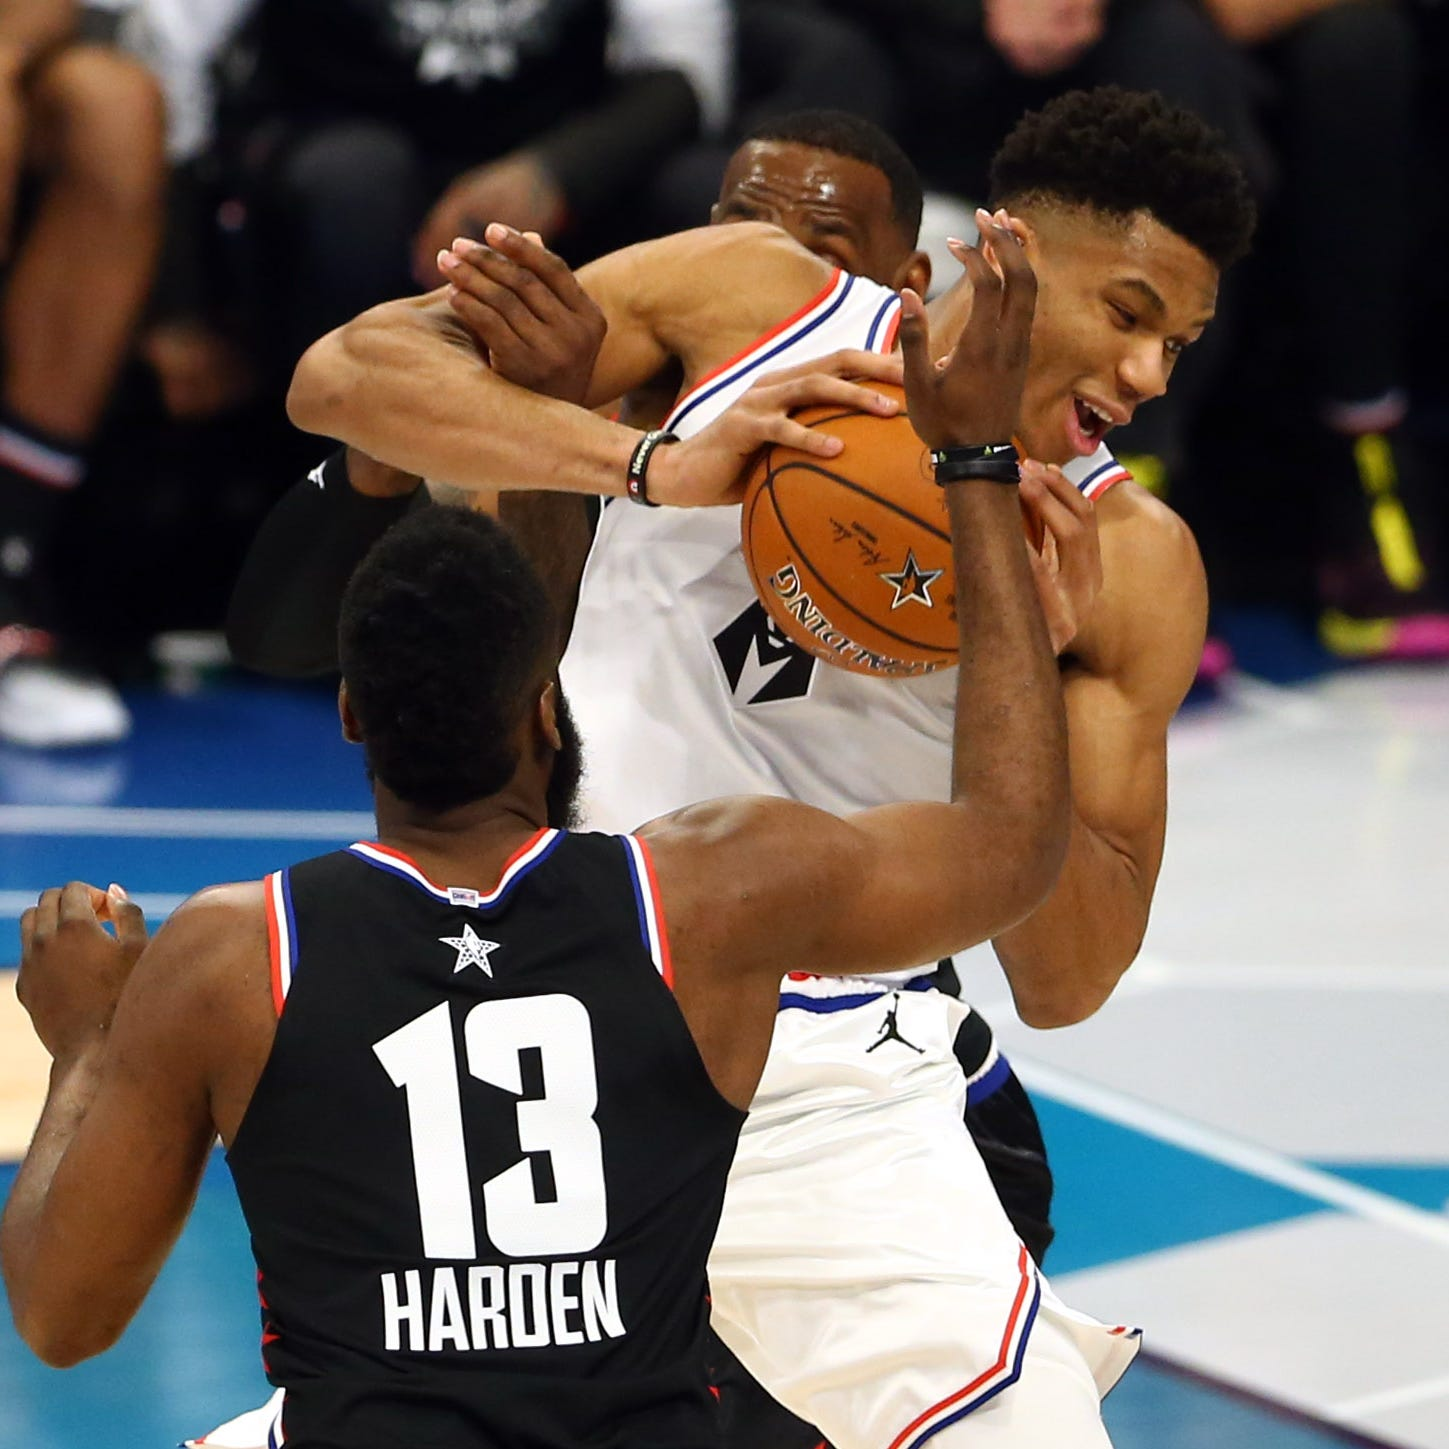 Giannis Antetokounmpo? James Harden? Who's the MVP? This NBA race is far from decided.